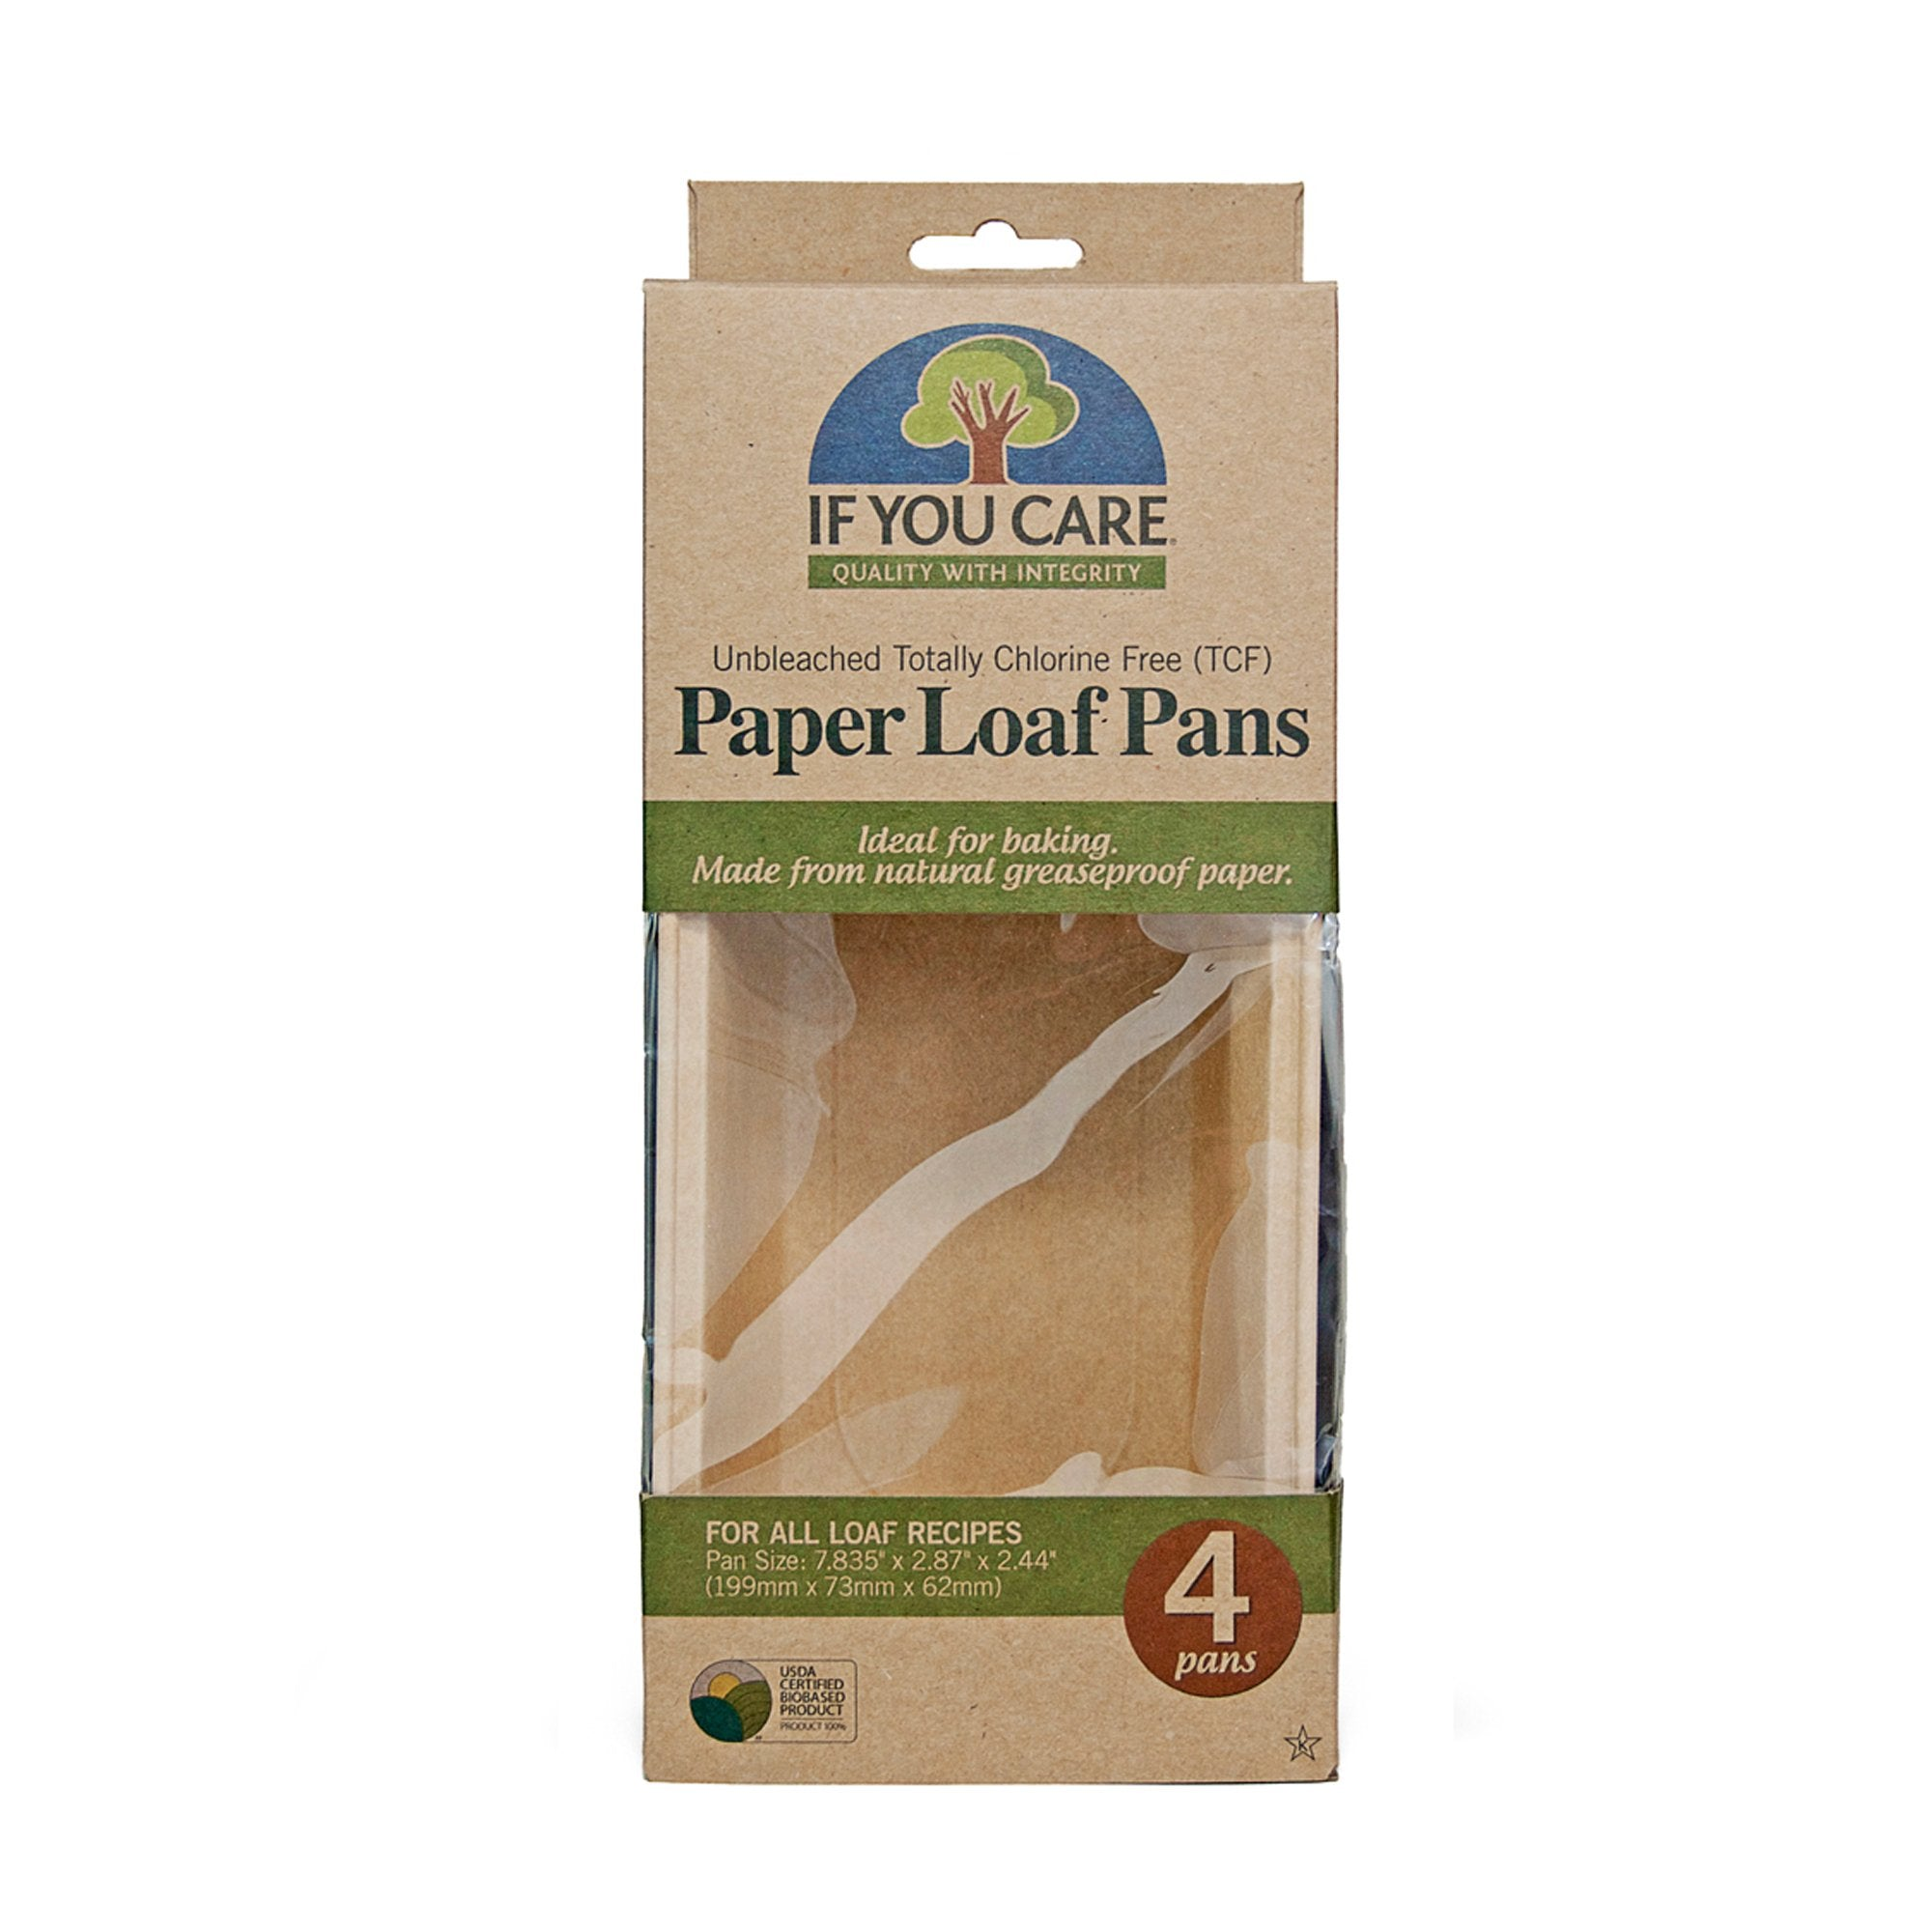 "paper loaf pans in package, 4 pans per, pan size 7.835"" x 2.87"" x 2.44"""